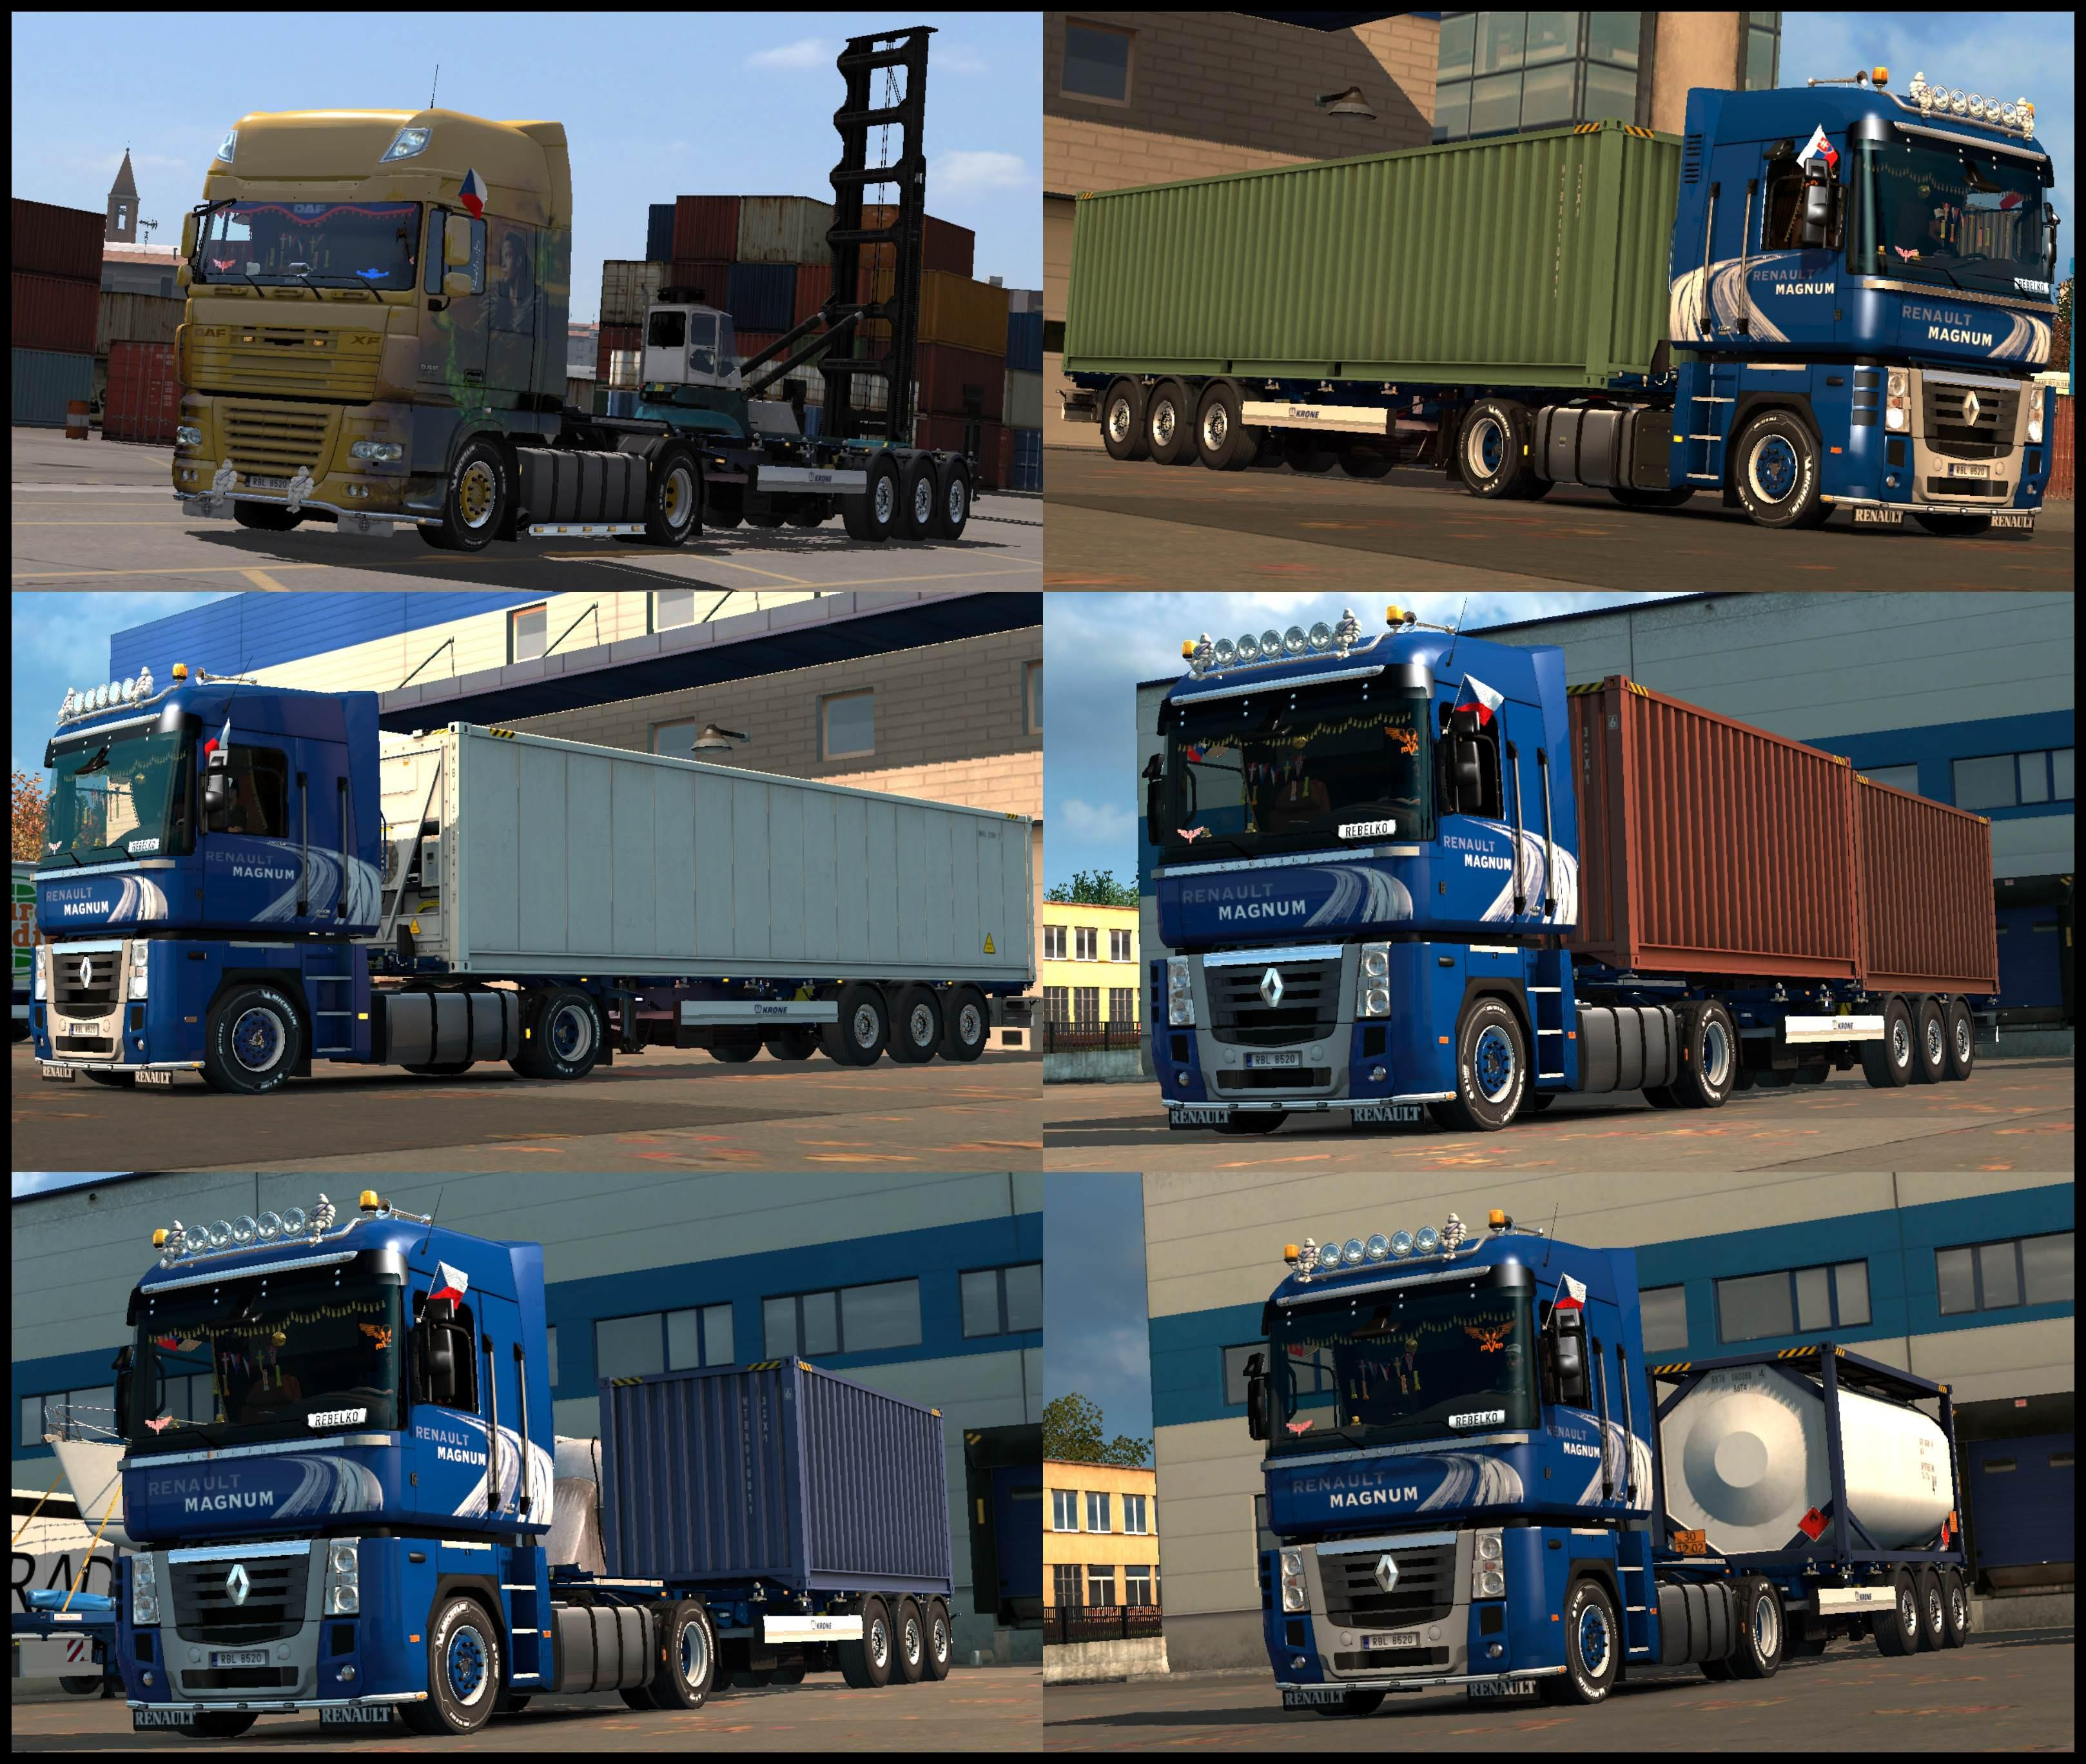 Gooseneck Trailers Owned V120 Ets2 Euro Truck Simulator 2 Mods Double Car Trailer 24 Foot Flatbed